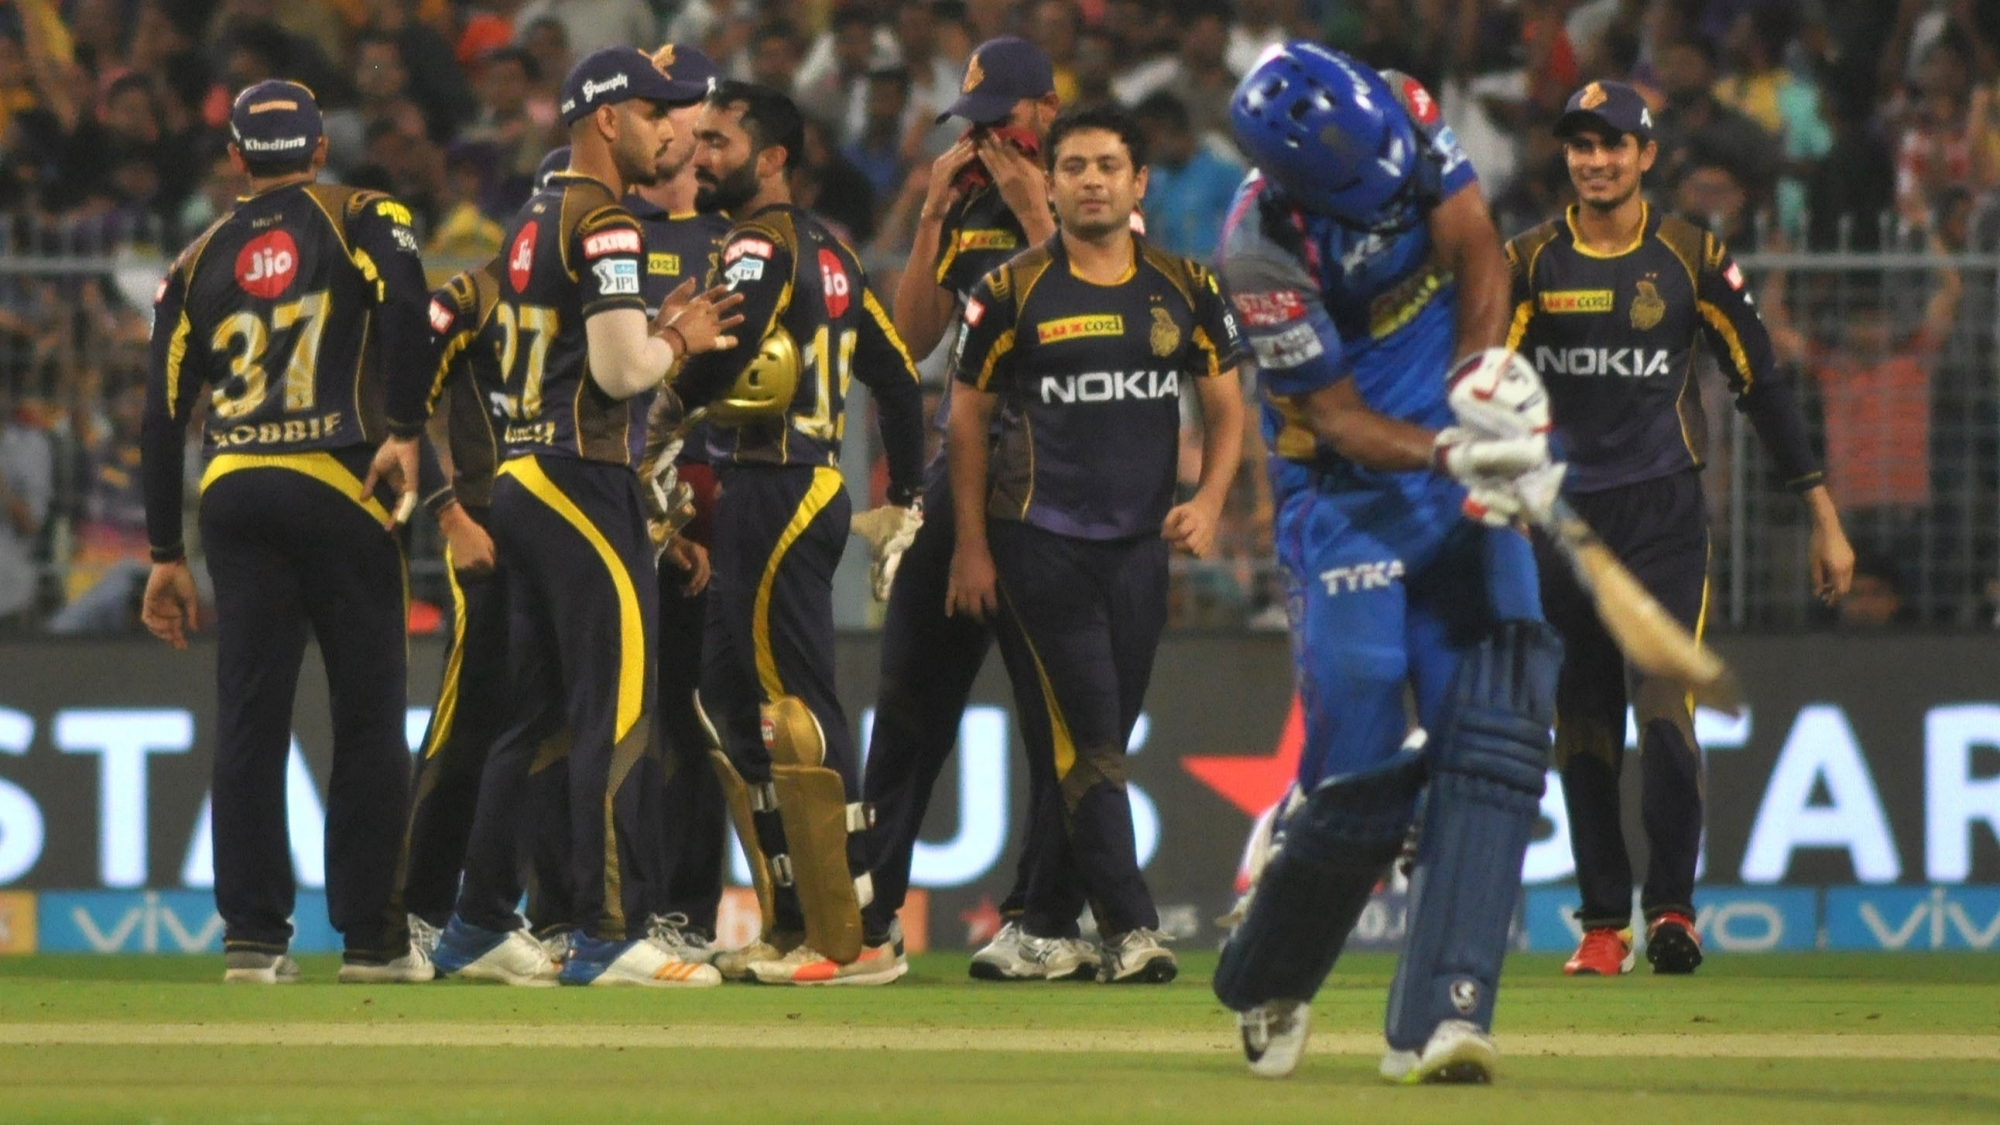 IPL 2018: Eliminator, KKR v RR – KKR beat RR by 25 runs as spinners strangulate RR batting to defend 169